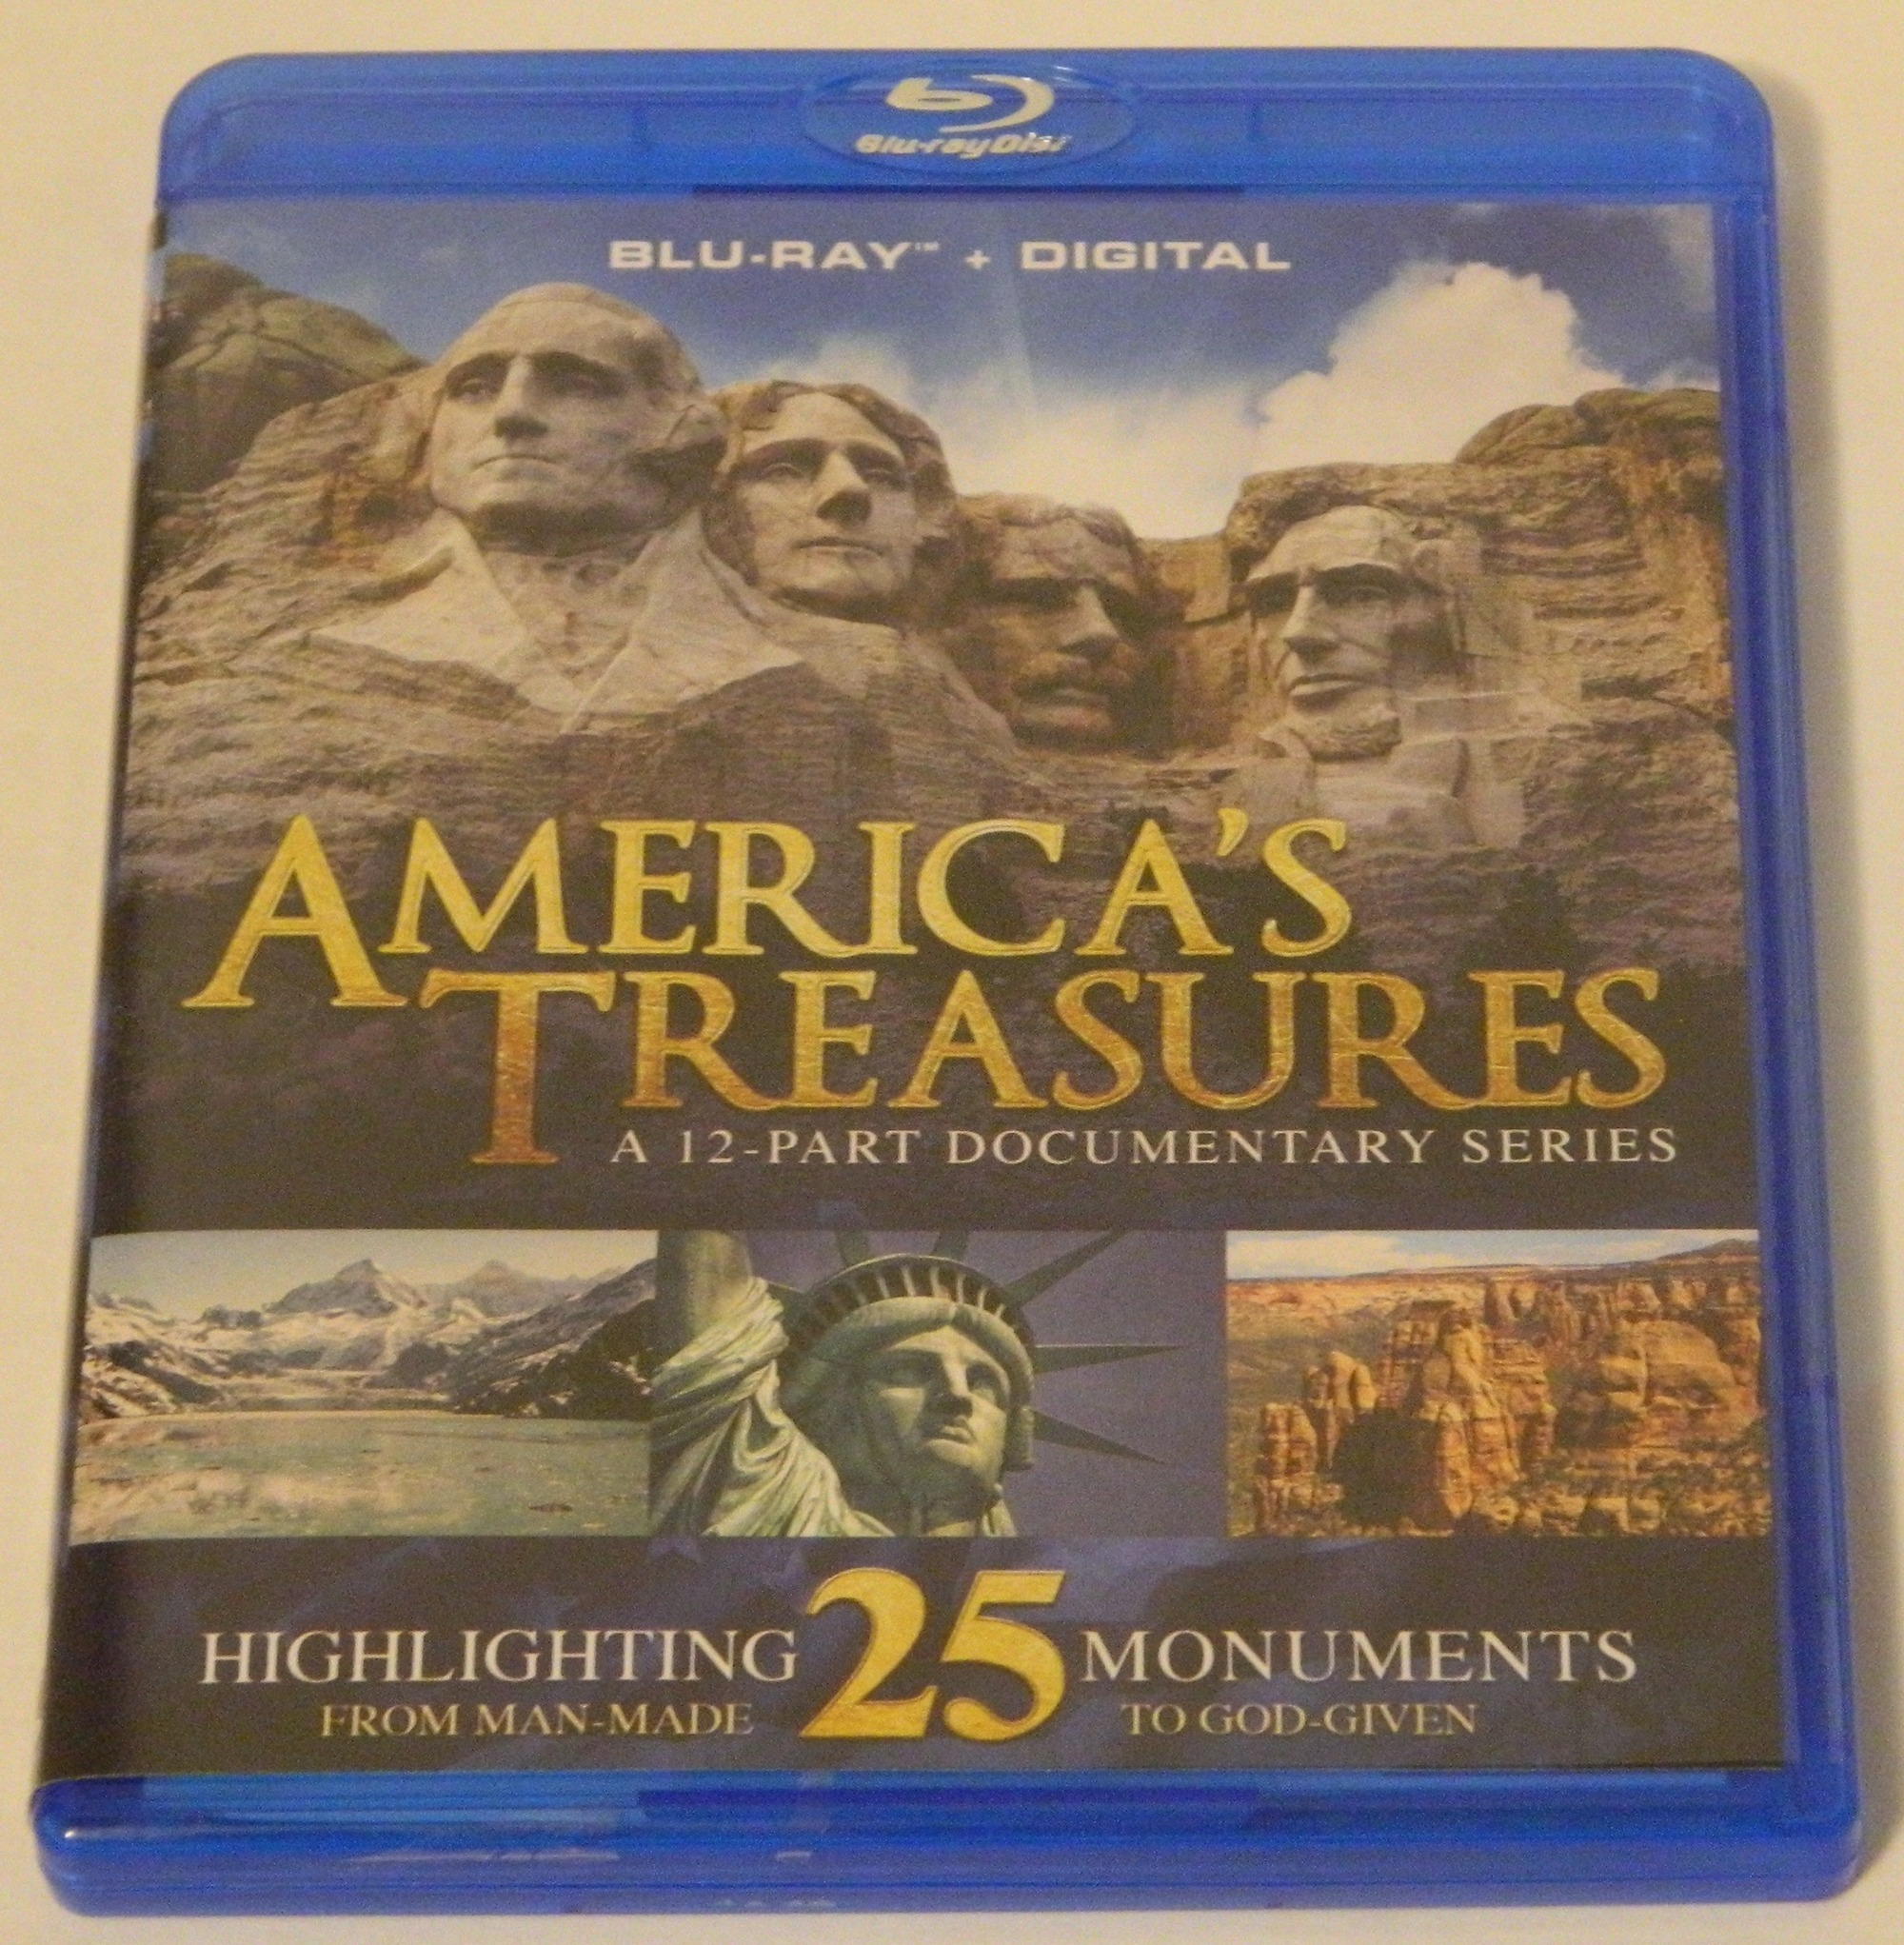 America's Treasures Blu-ray